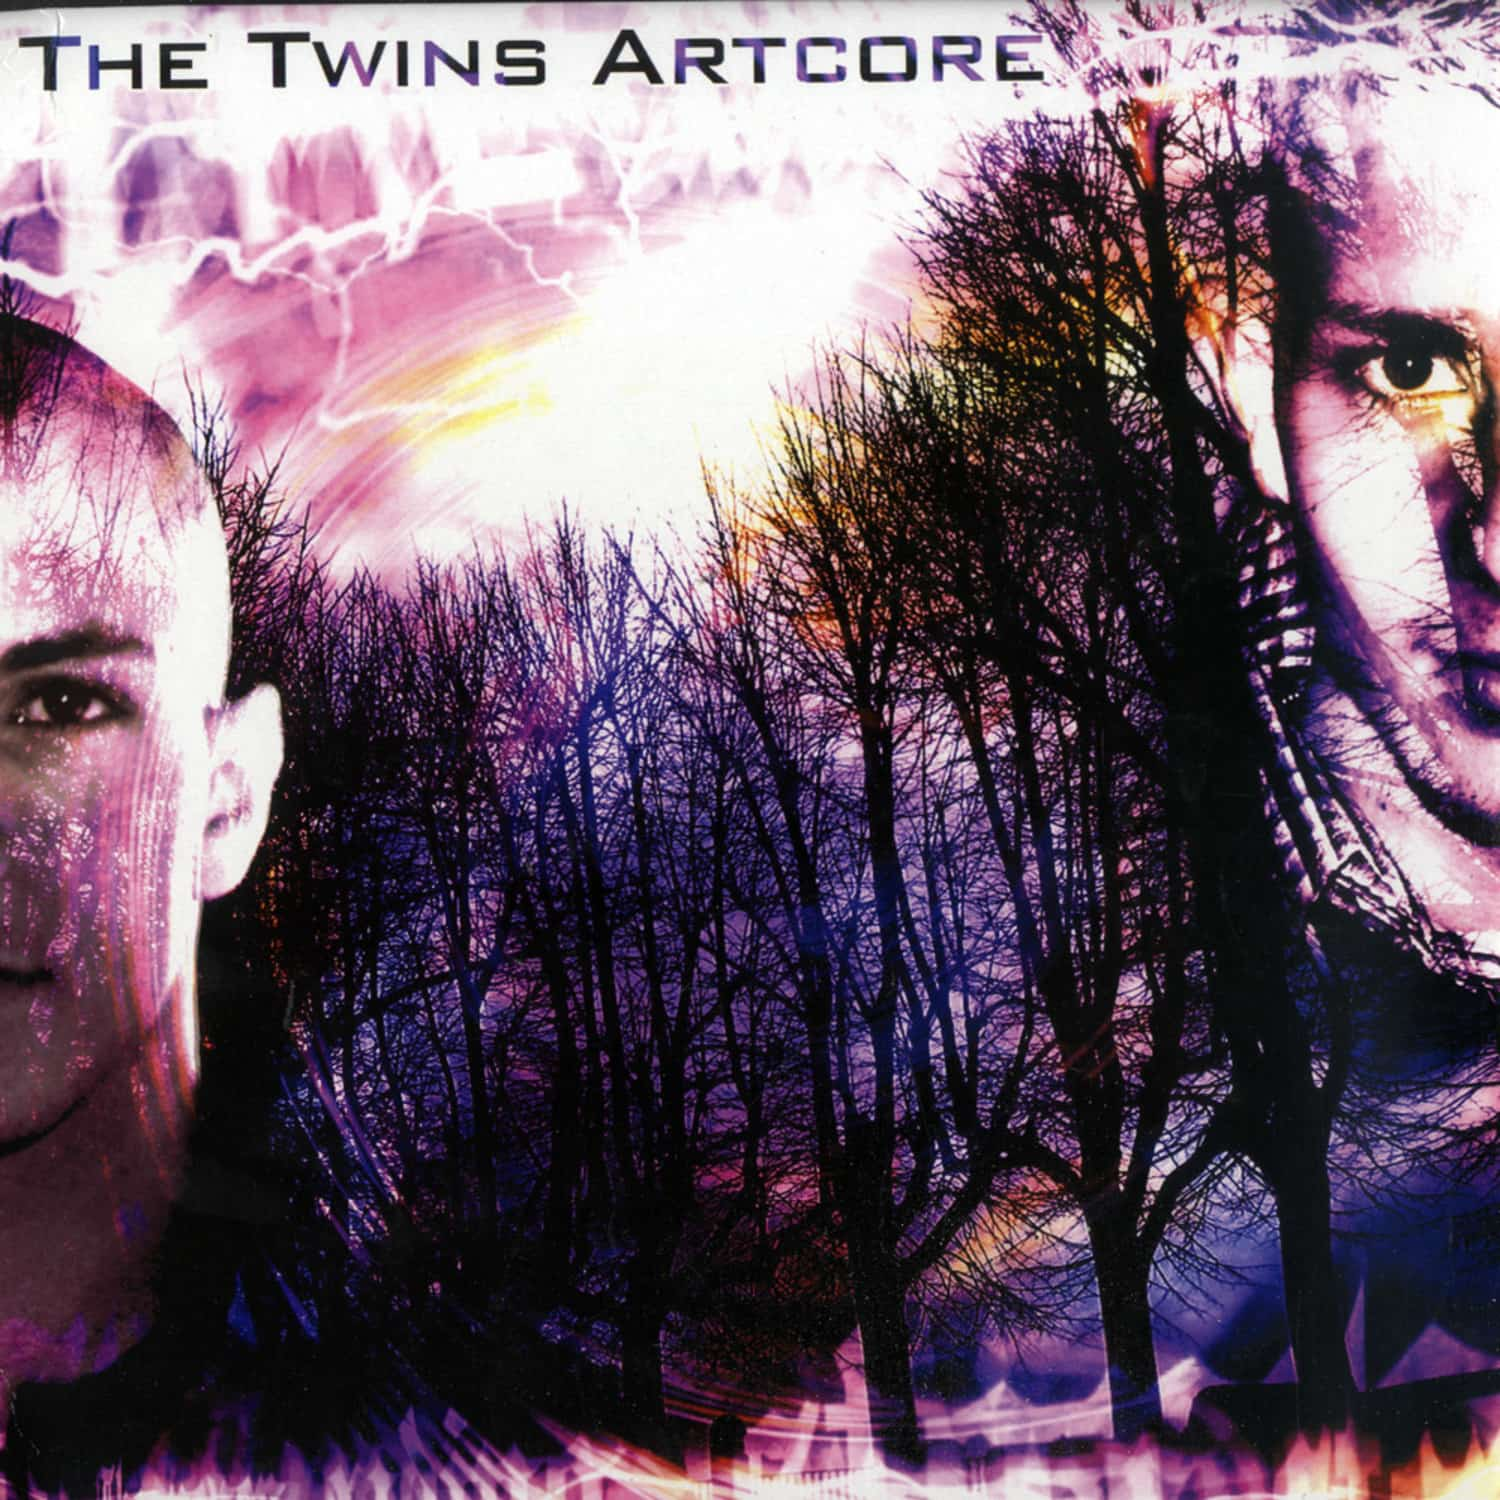 The Twins Artcore - THE NEVER ENDING STORY 2